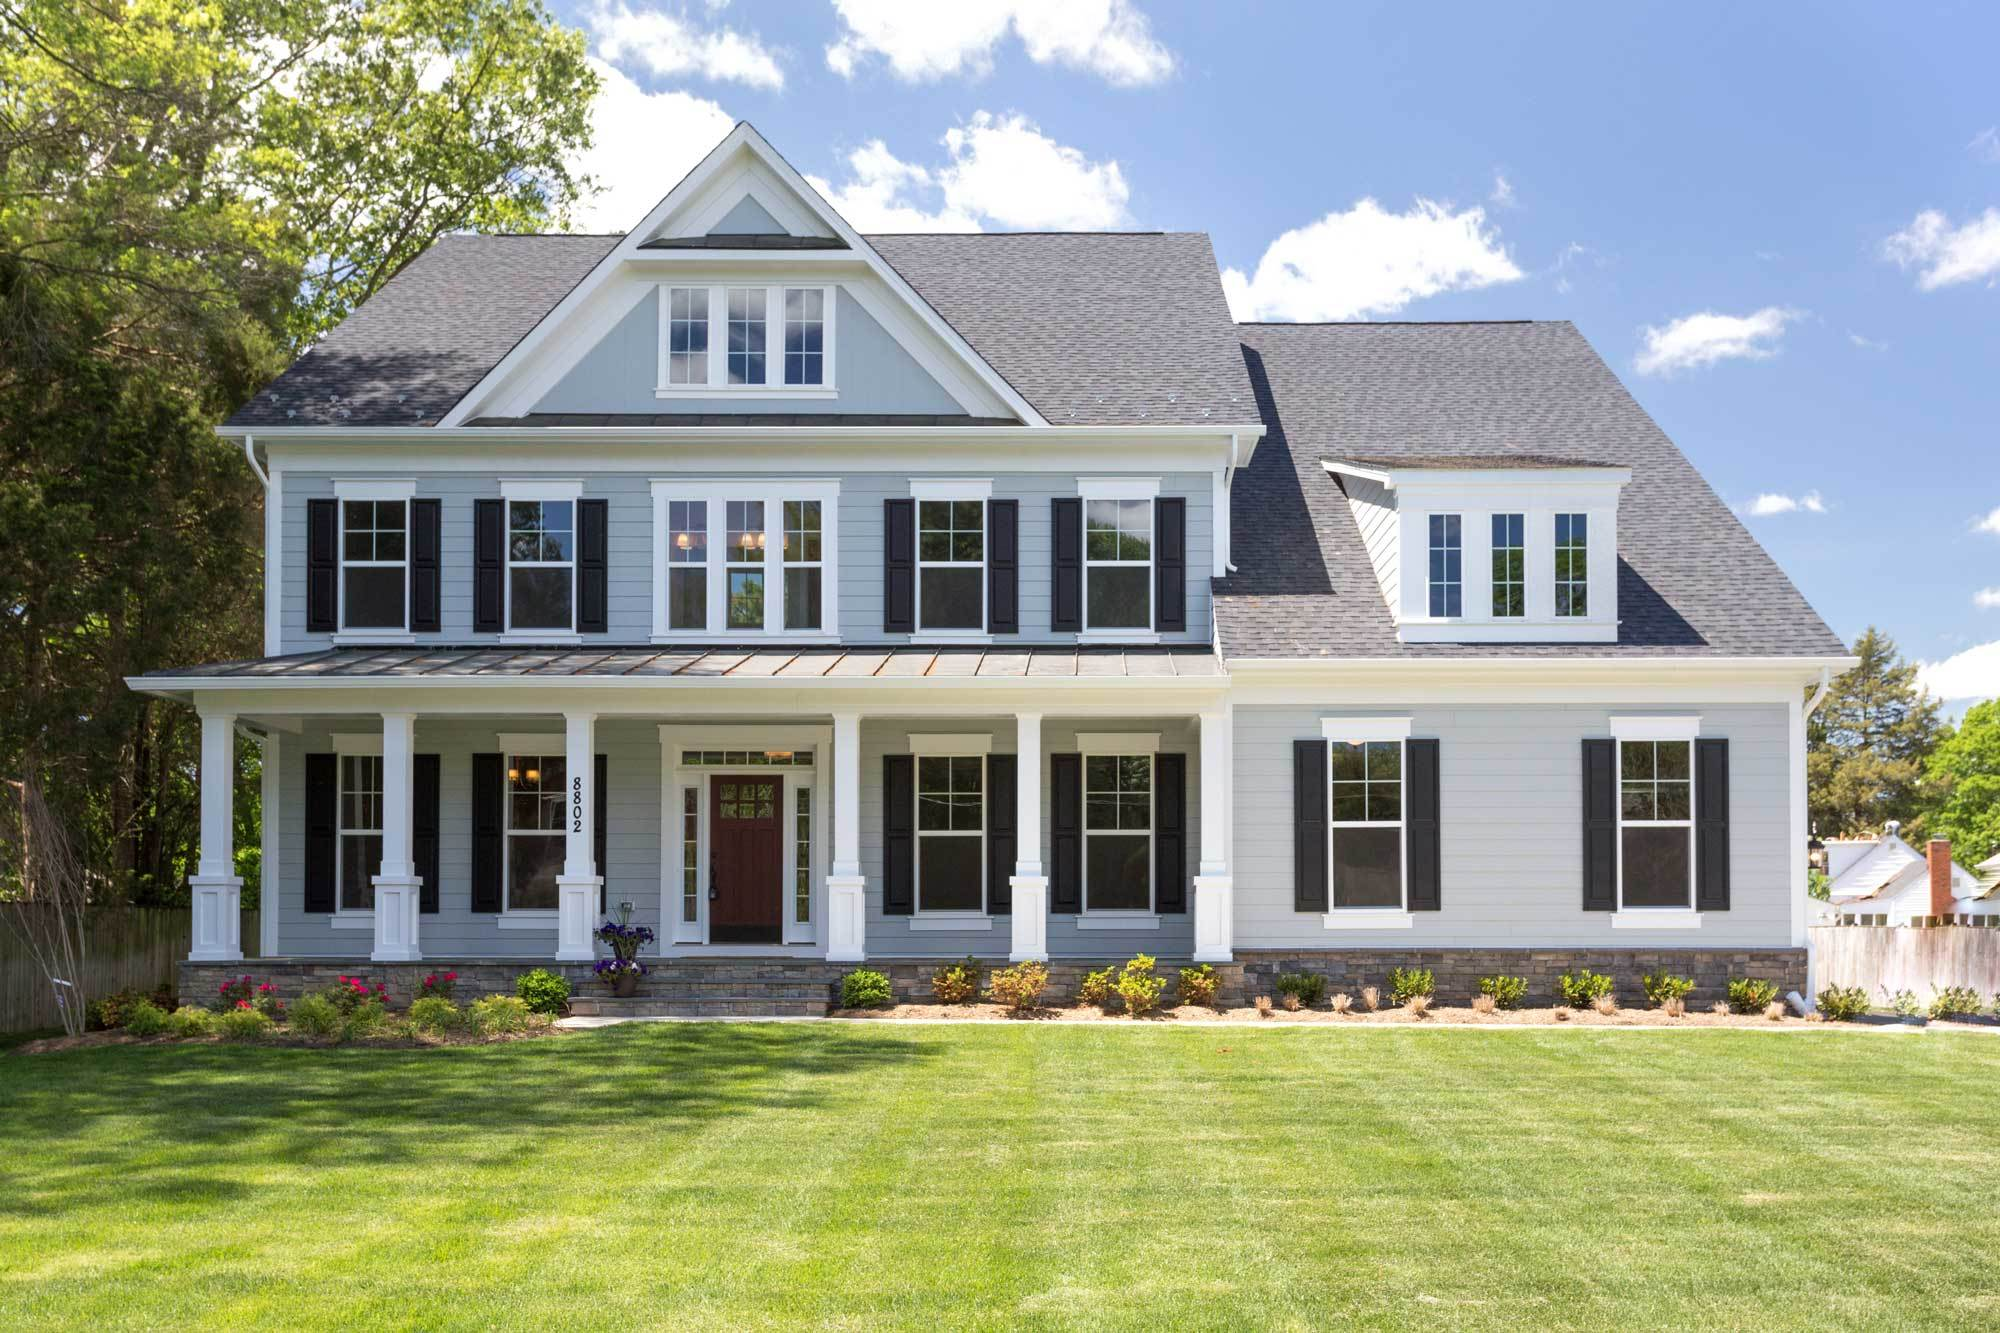 New Homes For Sale In Northern Va The Chapman By